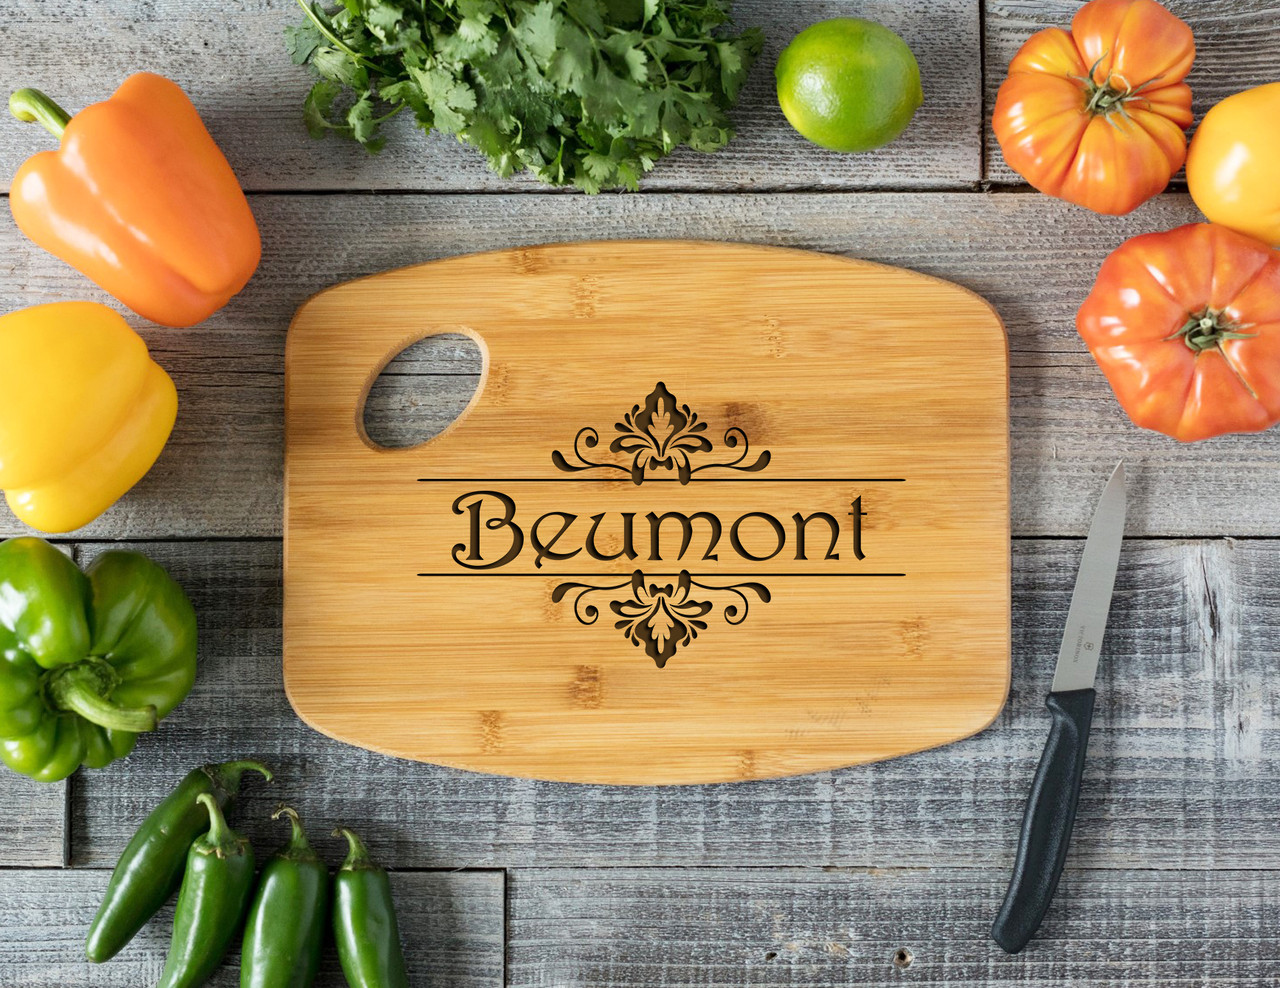 Grpn Spain Handle Floral Name Personalized Cutting Board Cabanyco